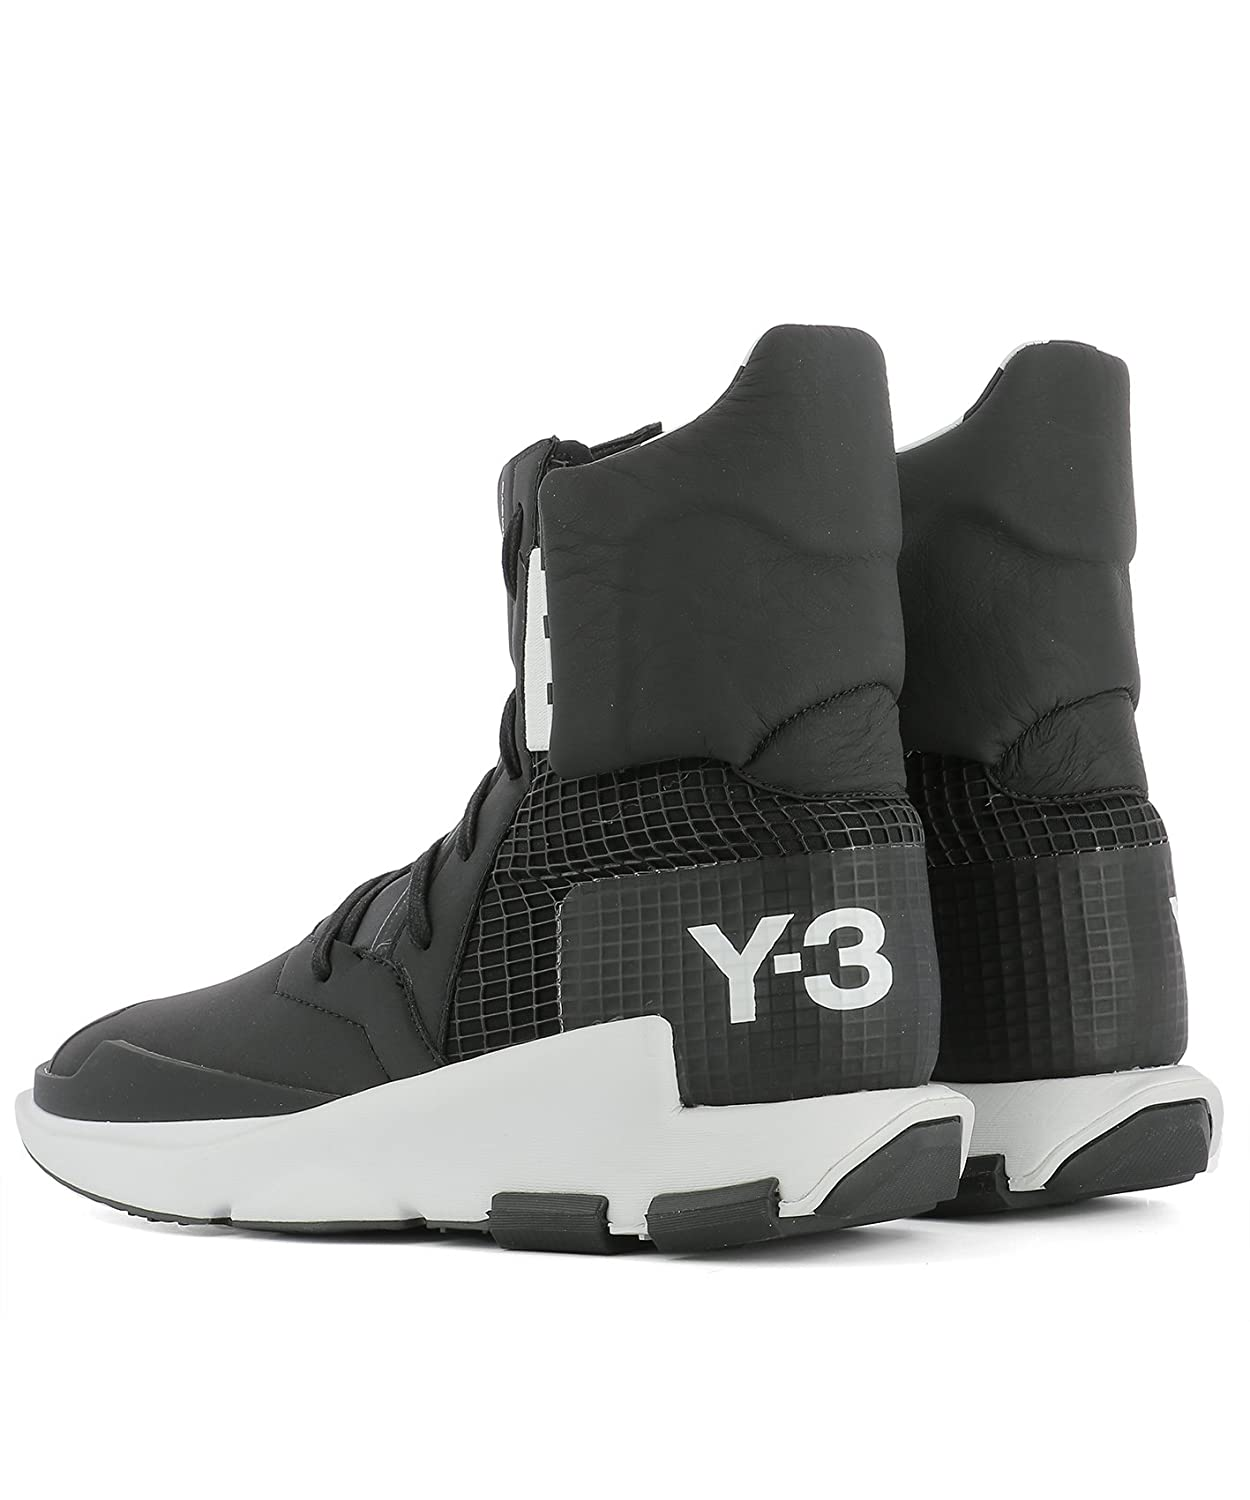 hot sale online 0a19d 3cdad ADIDAS Y-3 YOHJI YAMAMOTO, Stivali Uomo Nero Nero IT - Marke Größe   Amazon.it  Scarpe e borse